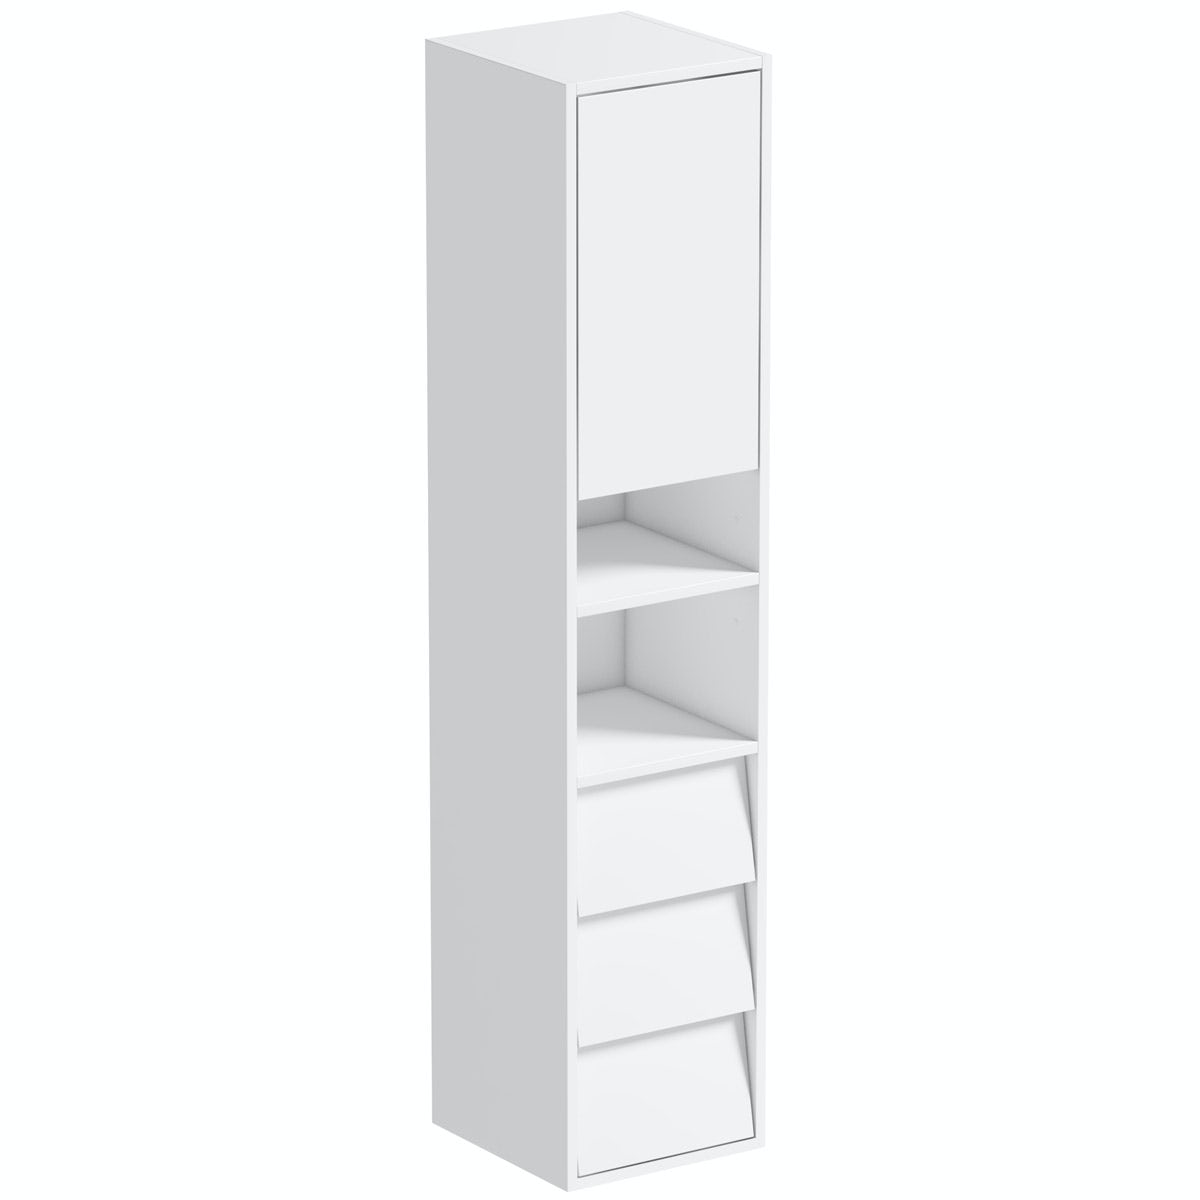 Mode Cooper white side cabinet